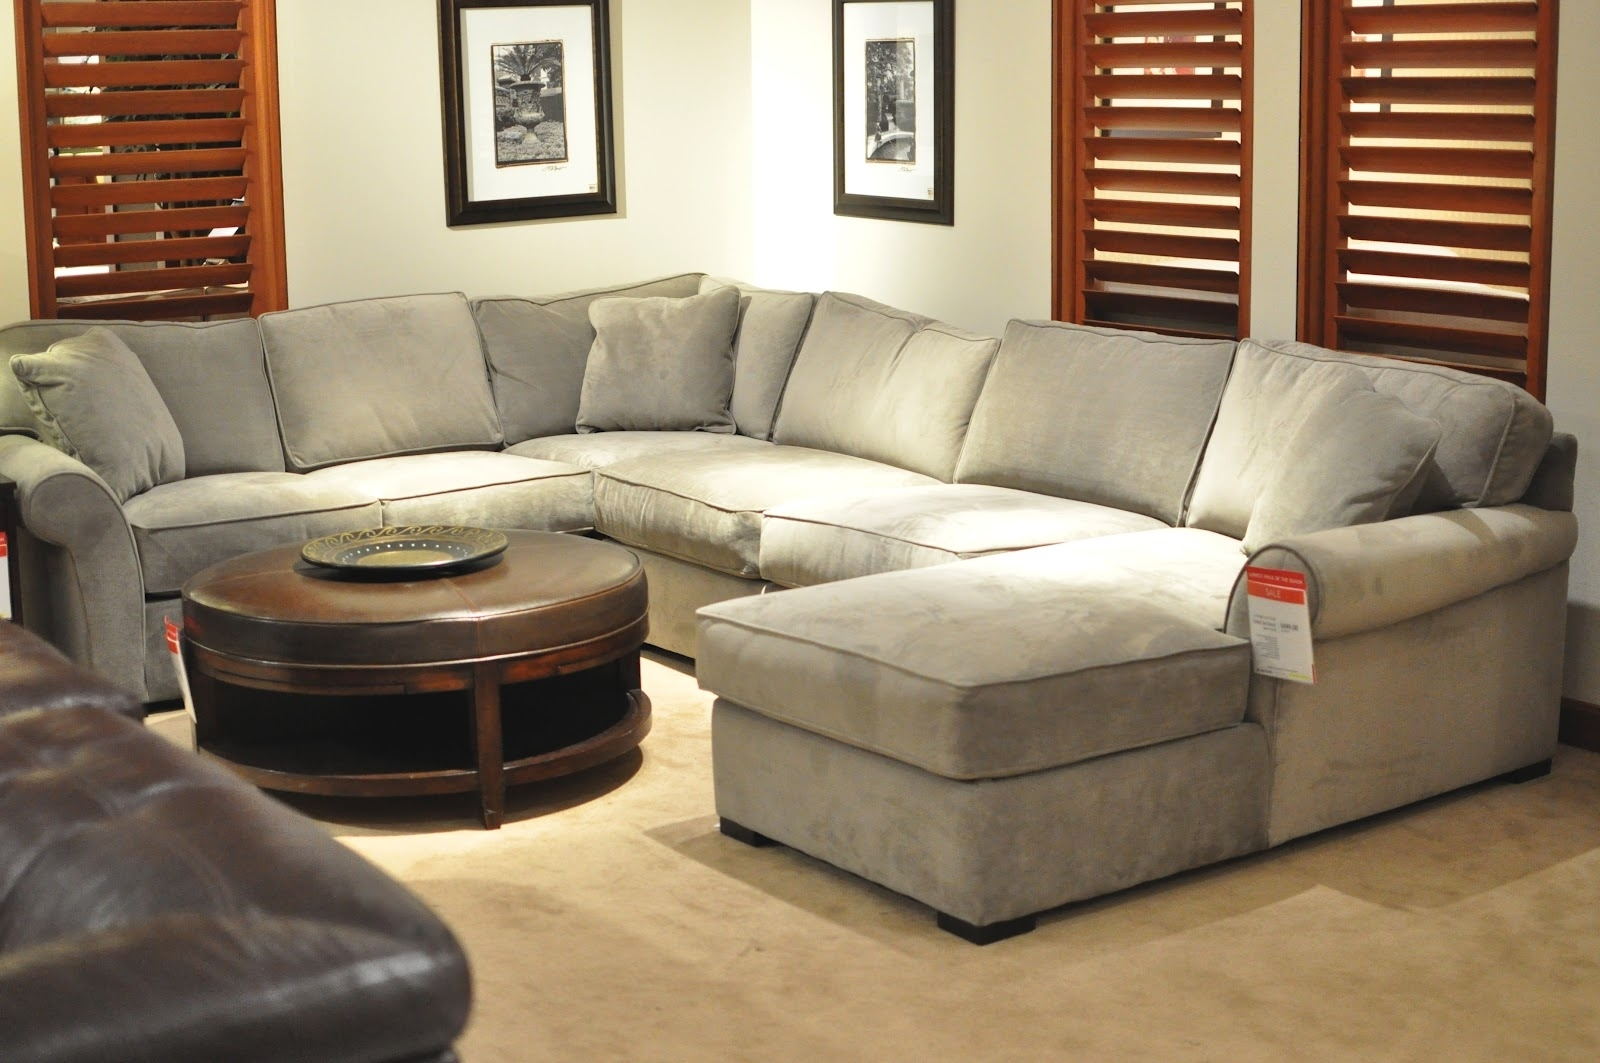 Not So Newlywed Mcgees: Shopping For A Sectional Within Phoenix Sectional Sofas (Image 7 of 10)